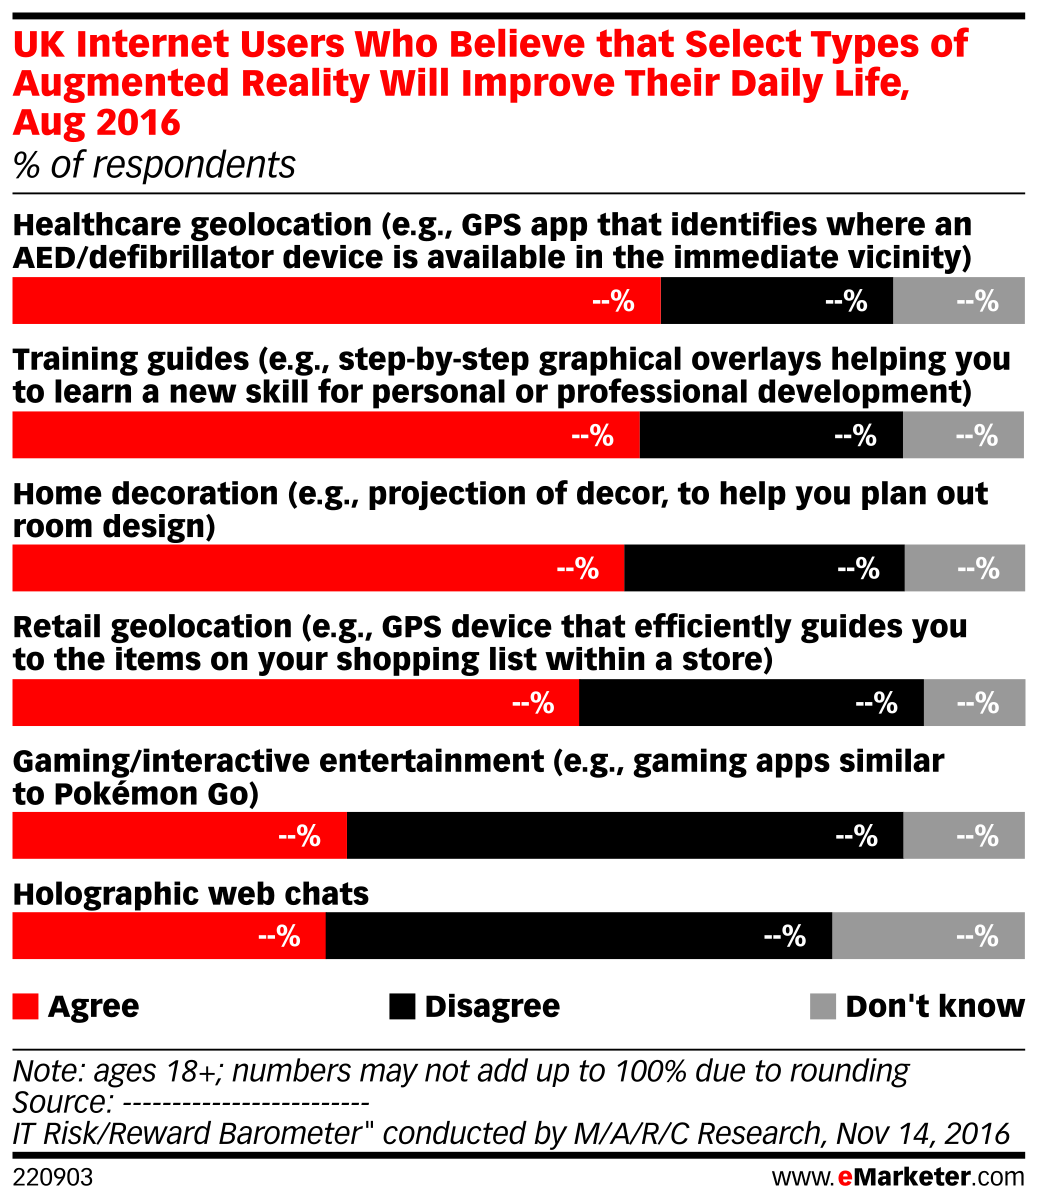 UK Internet Users Who Believe that Select Types of Augmented Reality Will Improve Their Daily Life, Aug 2016 (% of respondents)